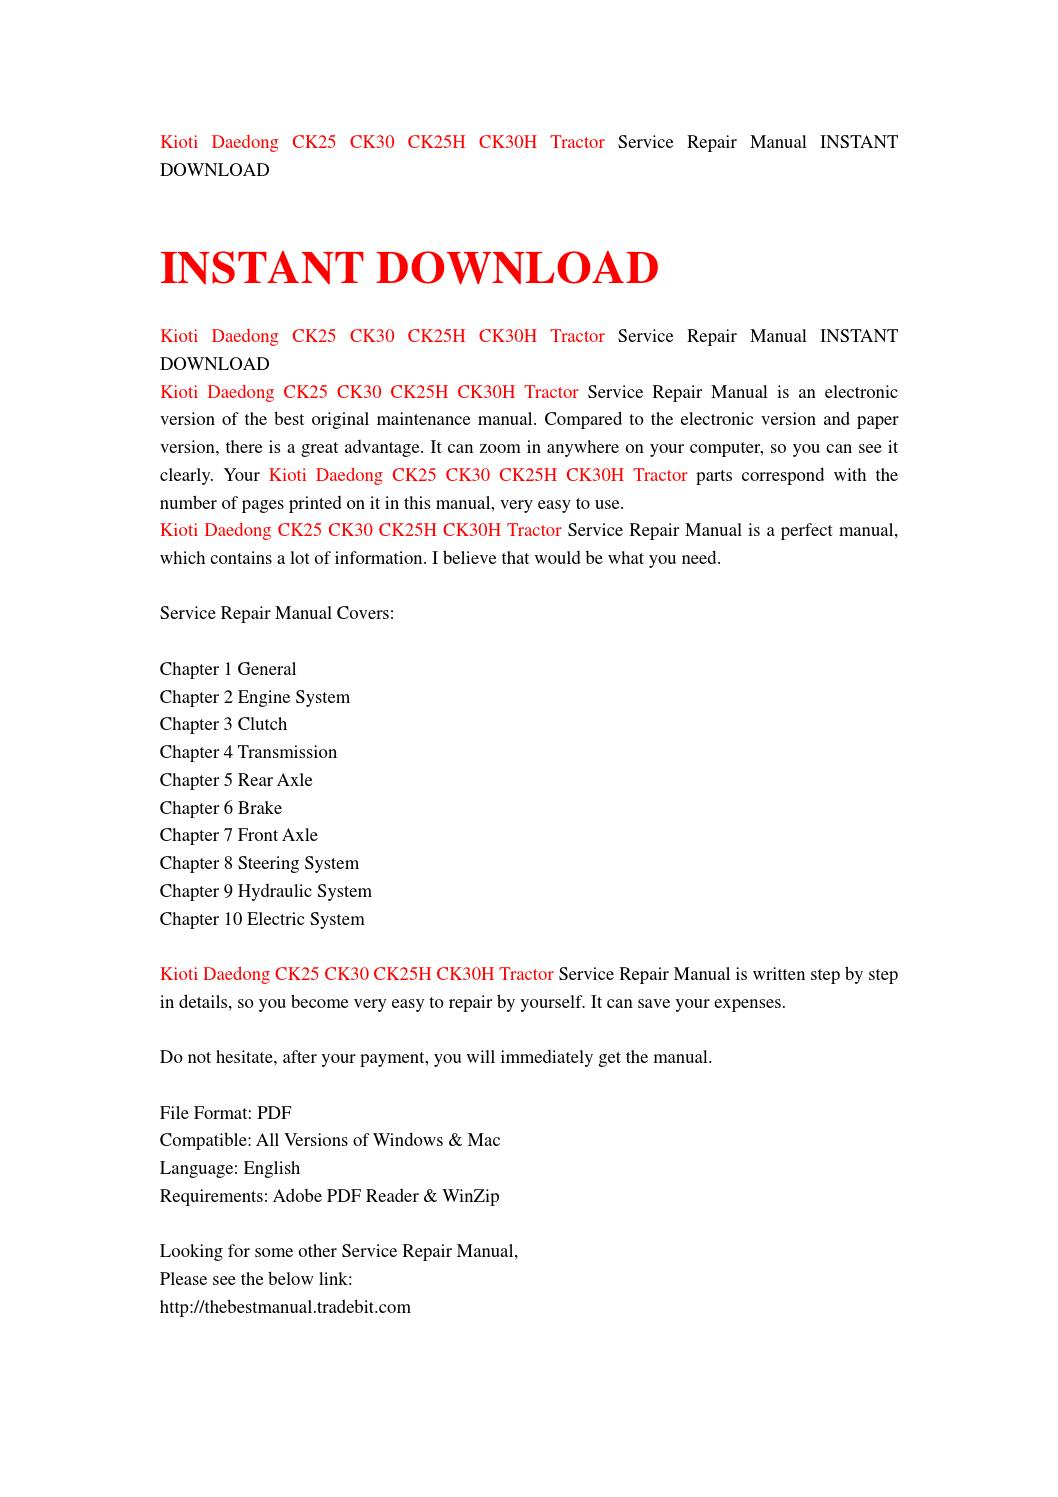 kioti daedong ck25 ck30 ck25h ck30h tractor service repair manual instant download